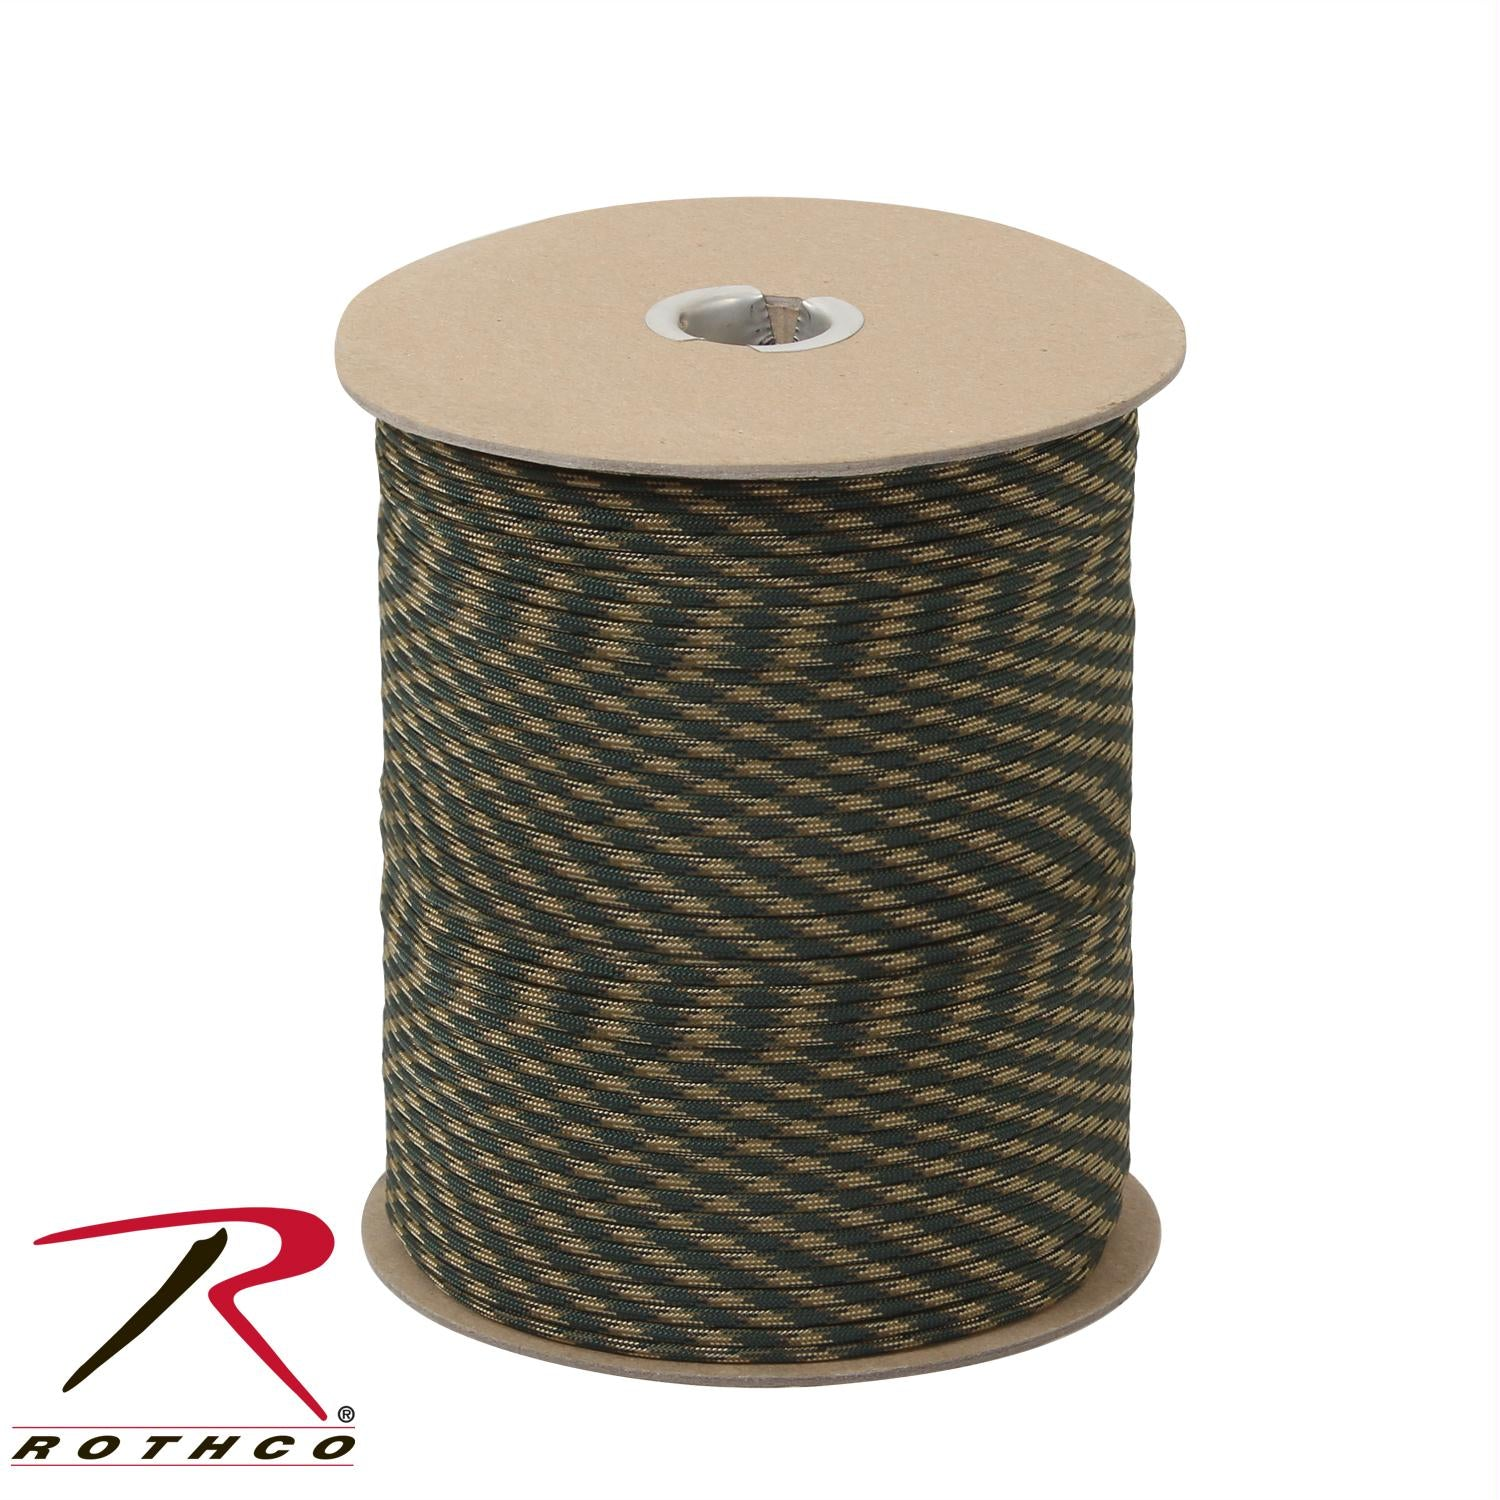 Rothco Nylon Paracord 550lb 1000 Ft Spool - Woodland Camo